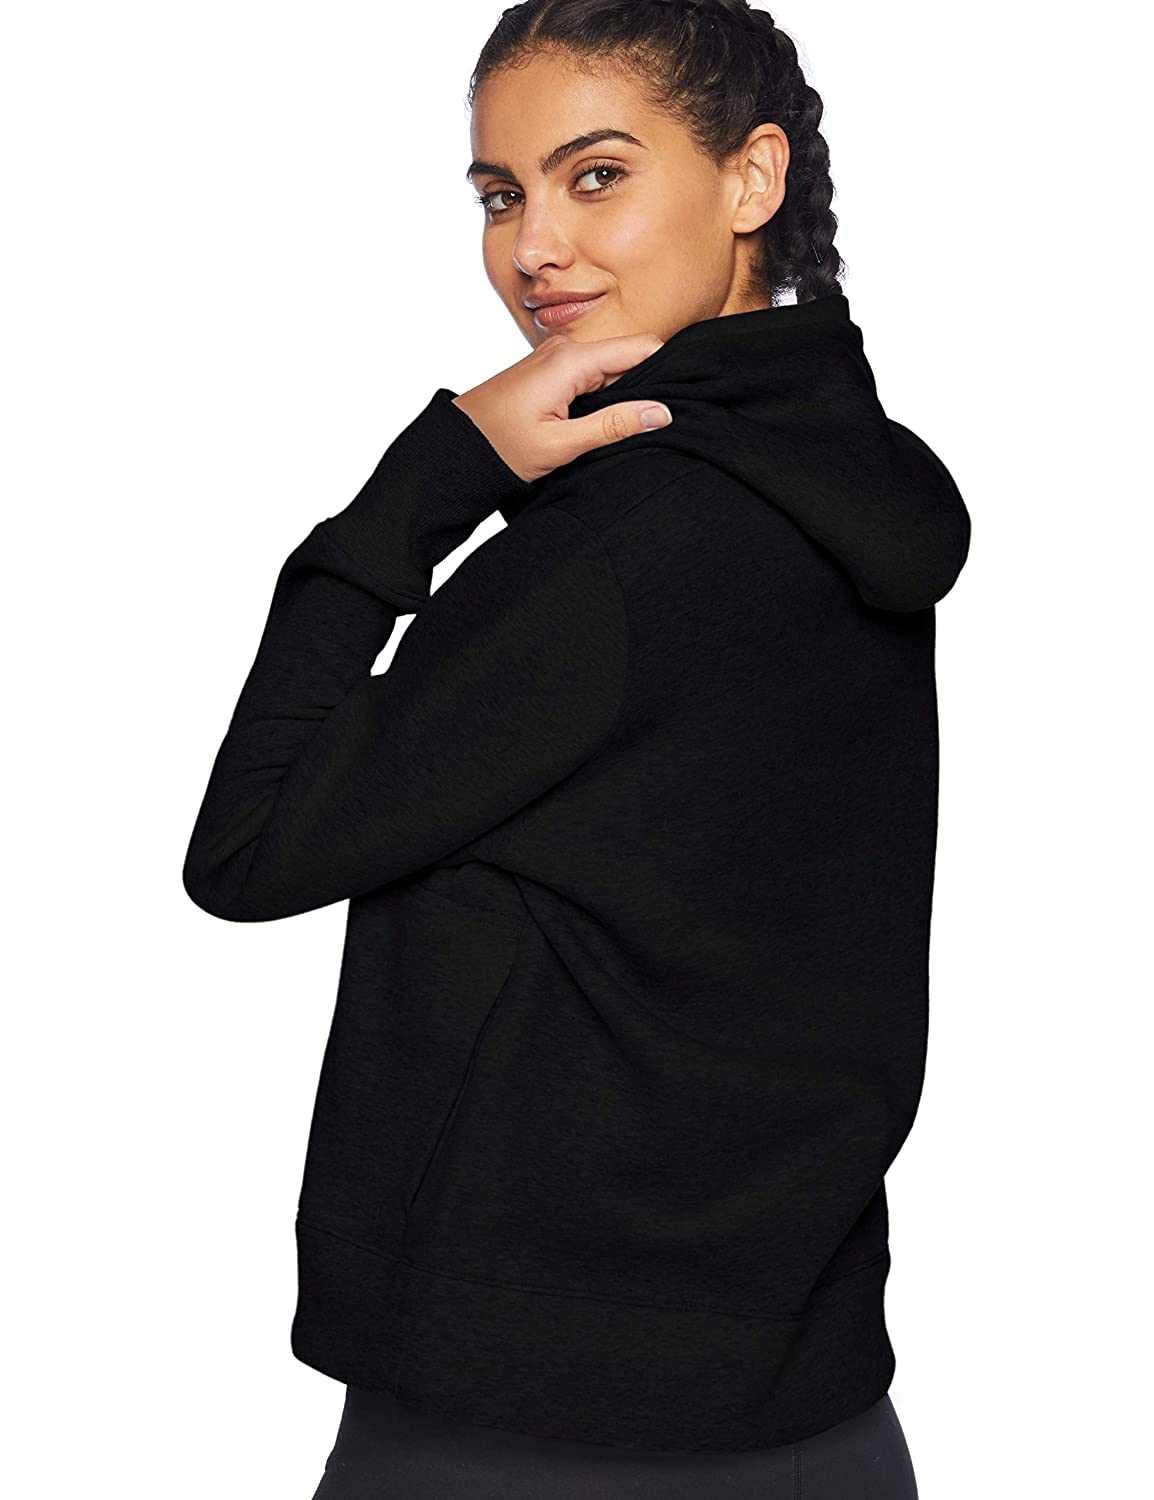 Under Armour Womens Cotton Fleece Sport Style Logo Hoodie Warm-up Top